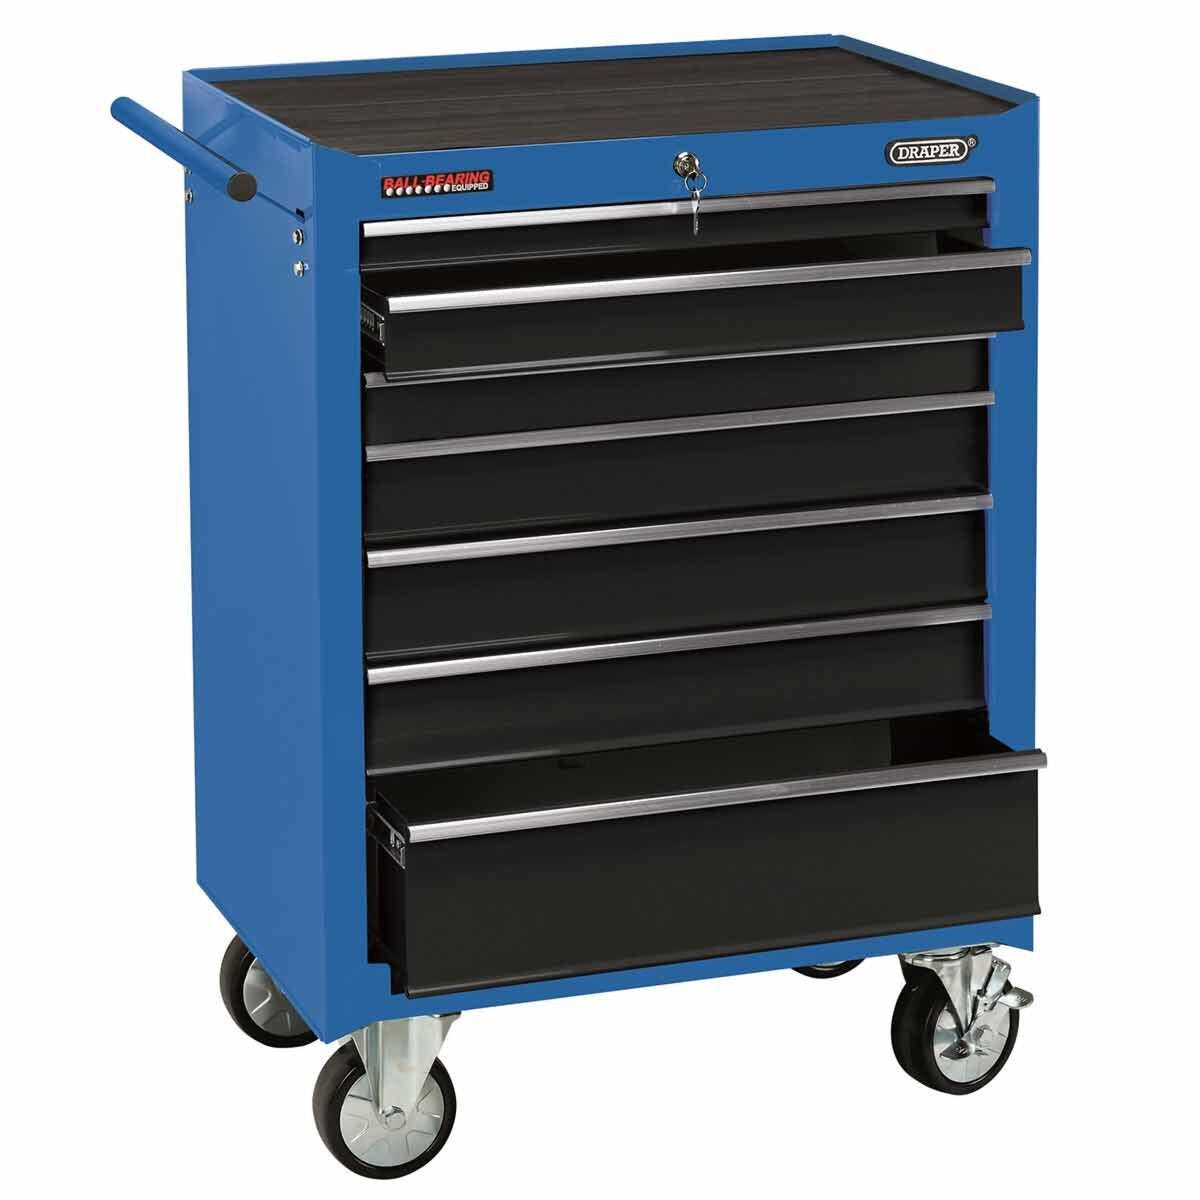 Draper 26 Inch Roller Cabinet with 7 Drawers